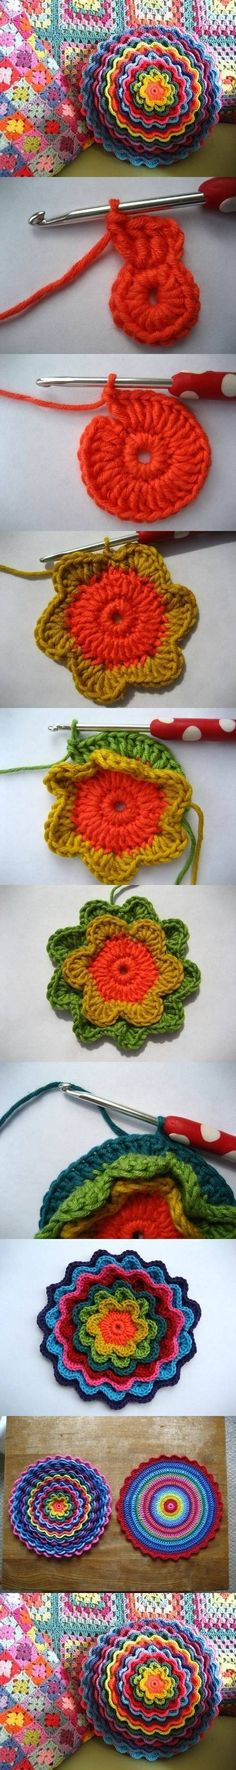 Magnifique Coussin Fleur Crochet DIY Wonderful DIY Crochet Flower Cushion I made this pillow and it turns out beautiful Diy Crochet Flowers, Crochet Diy, Crochet Flower Patterns, Crochet Home, Love Crochet, Crochet Crafts, Yarn Crafts, Flower Diy, Flower Video